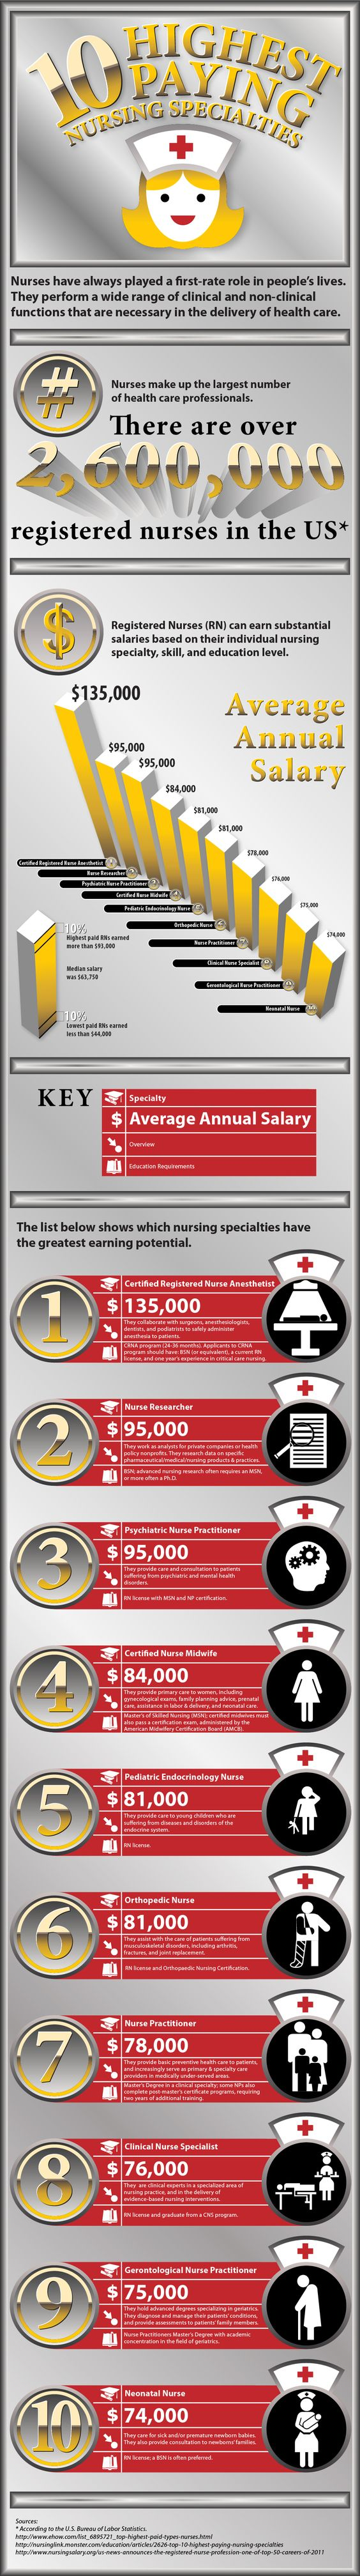 top paying nursing specialties my future as a nurse top 10 paying nursing specialties